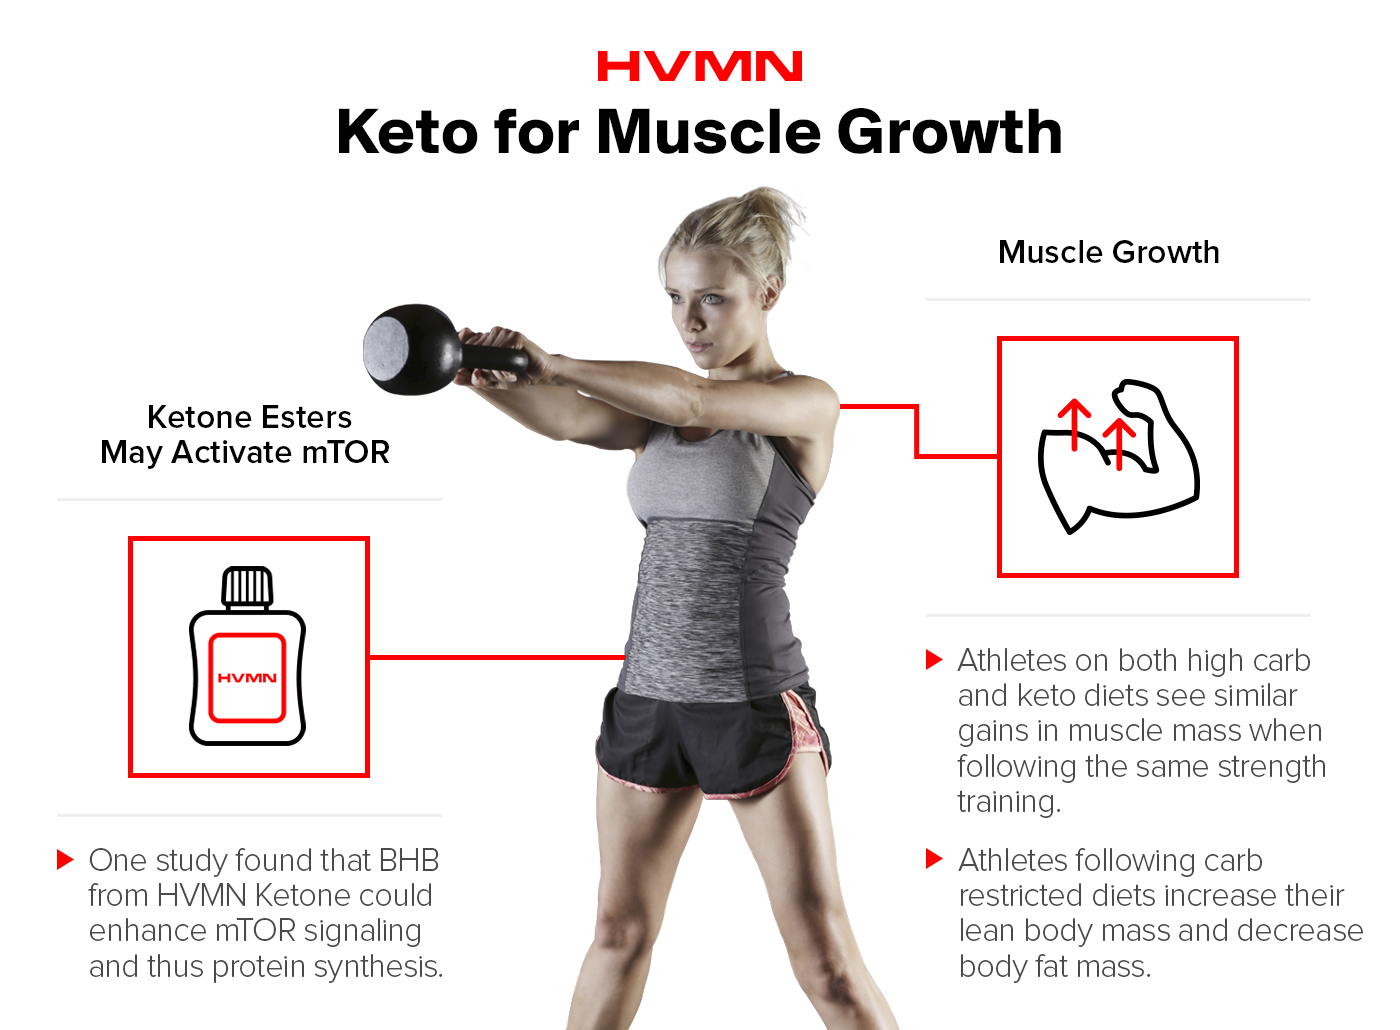 keto vs normal diet muscle retention